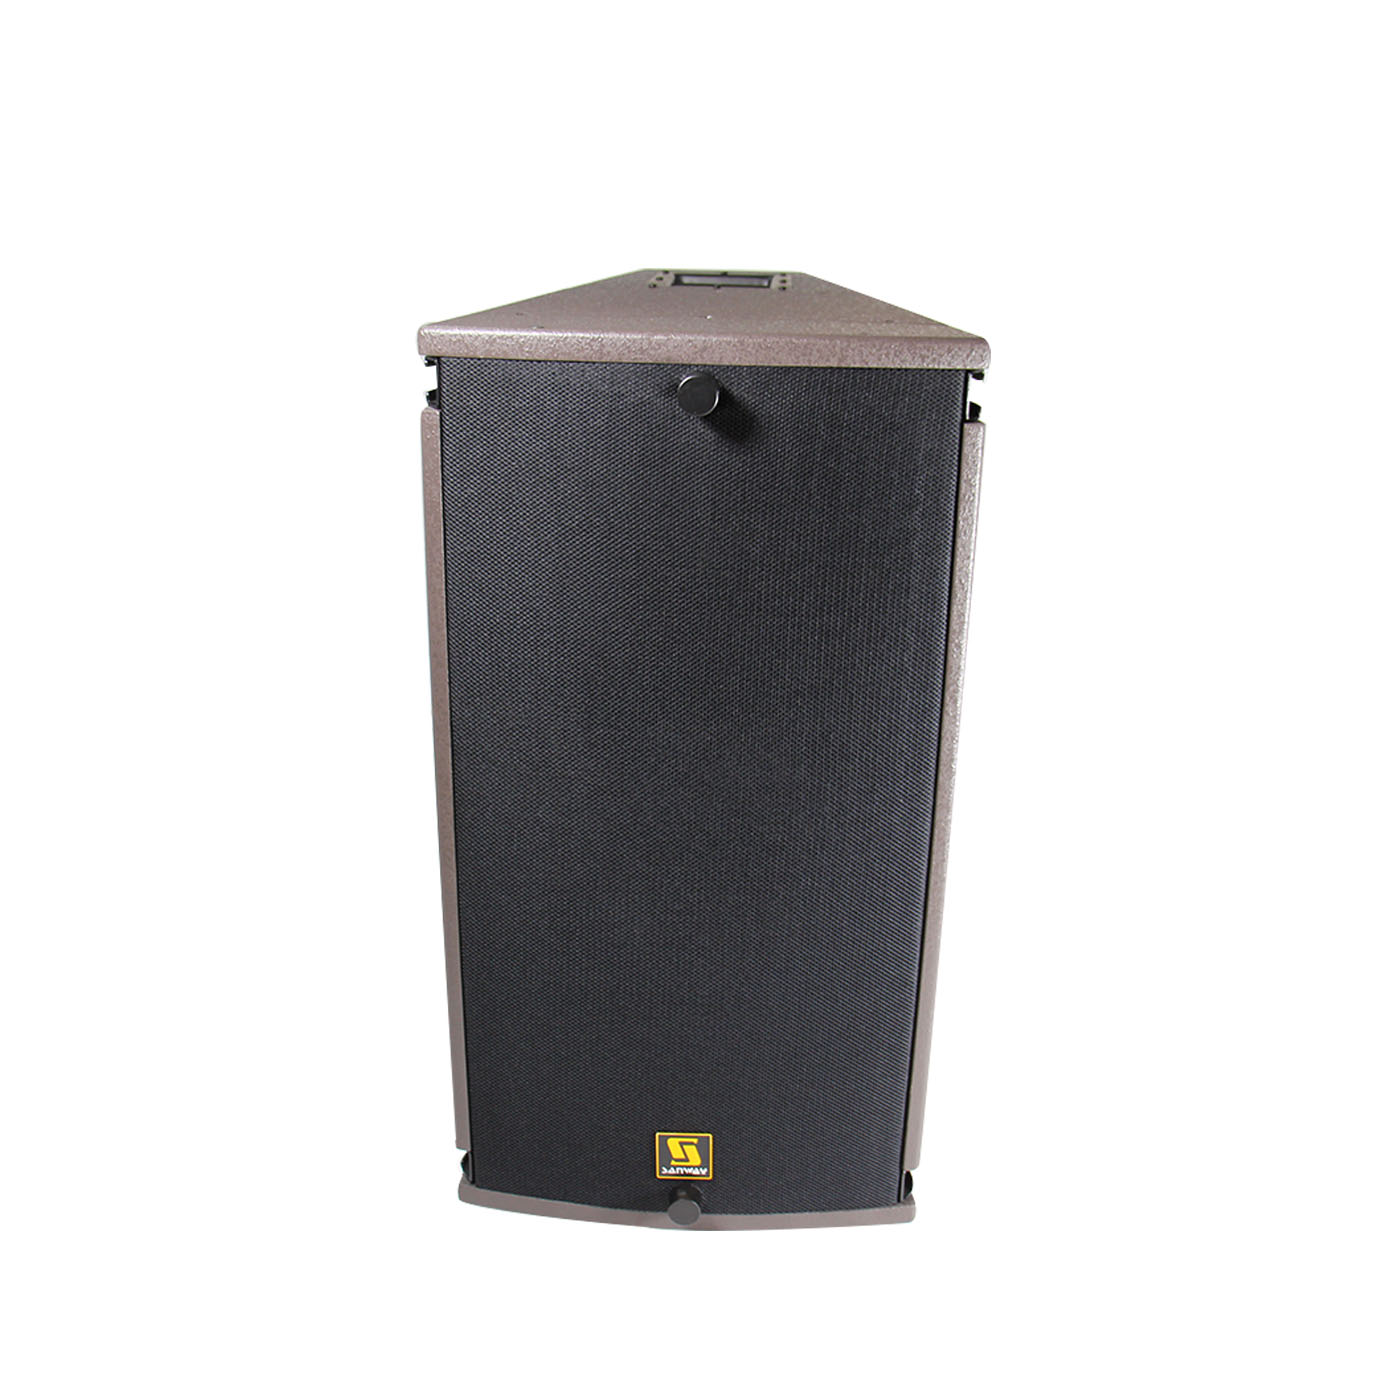 ARCS II 15 inch 2-way Line Array Speaker with Constant Curvature Design